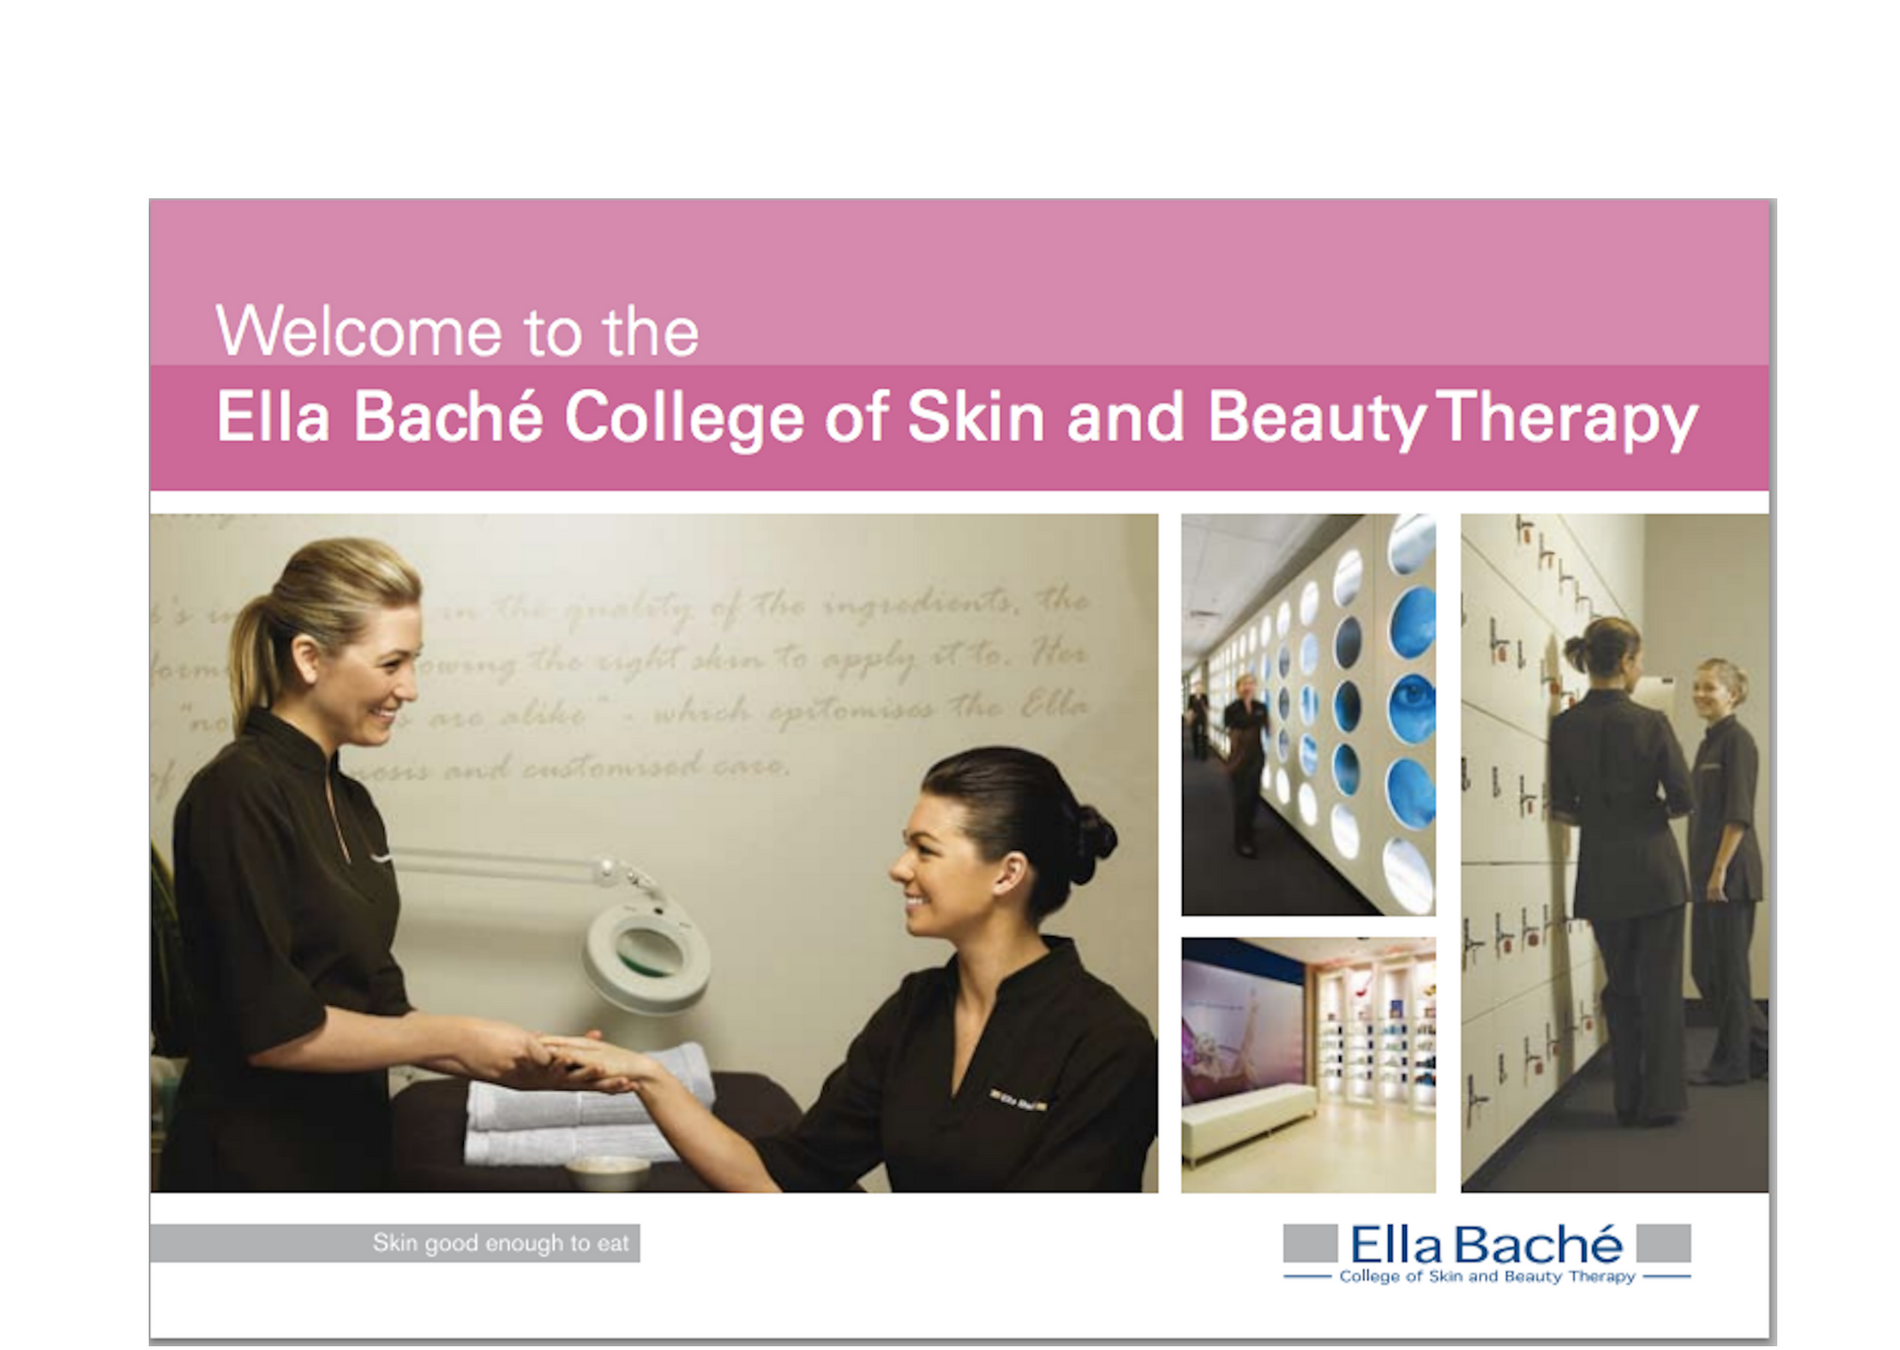 Ella Bache College of Skin & Beauty Therapy